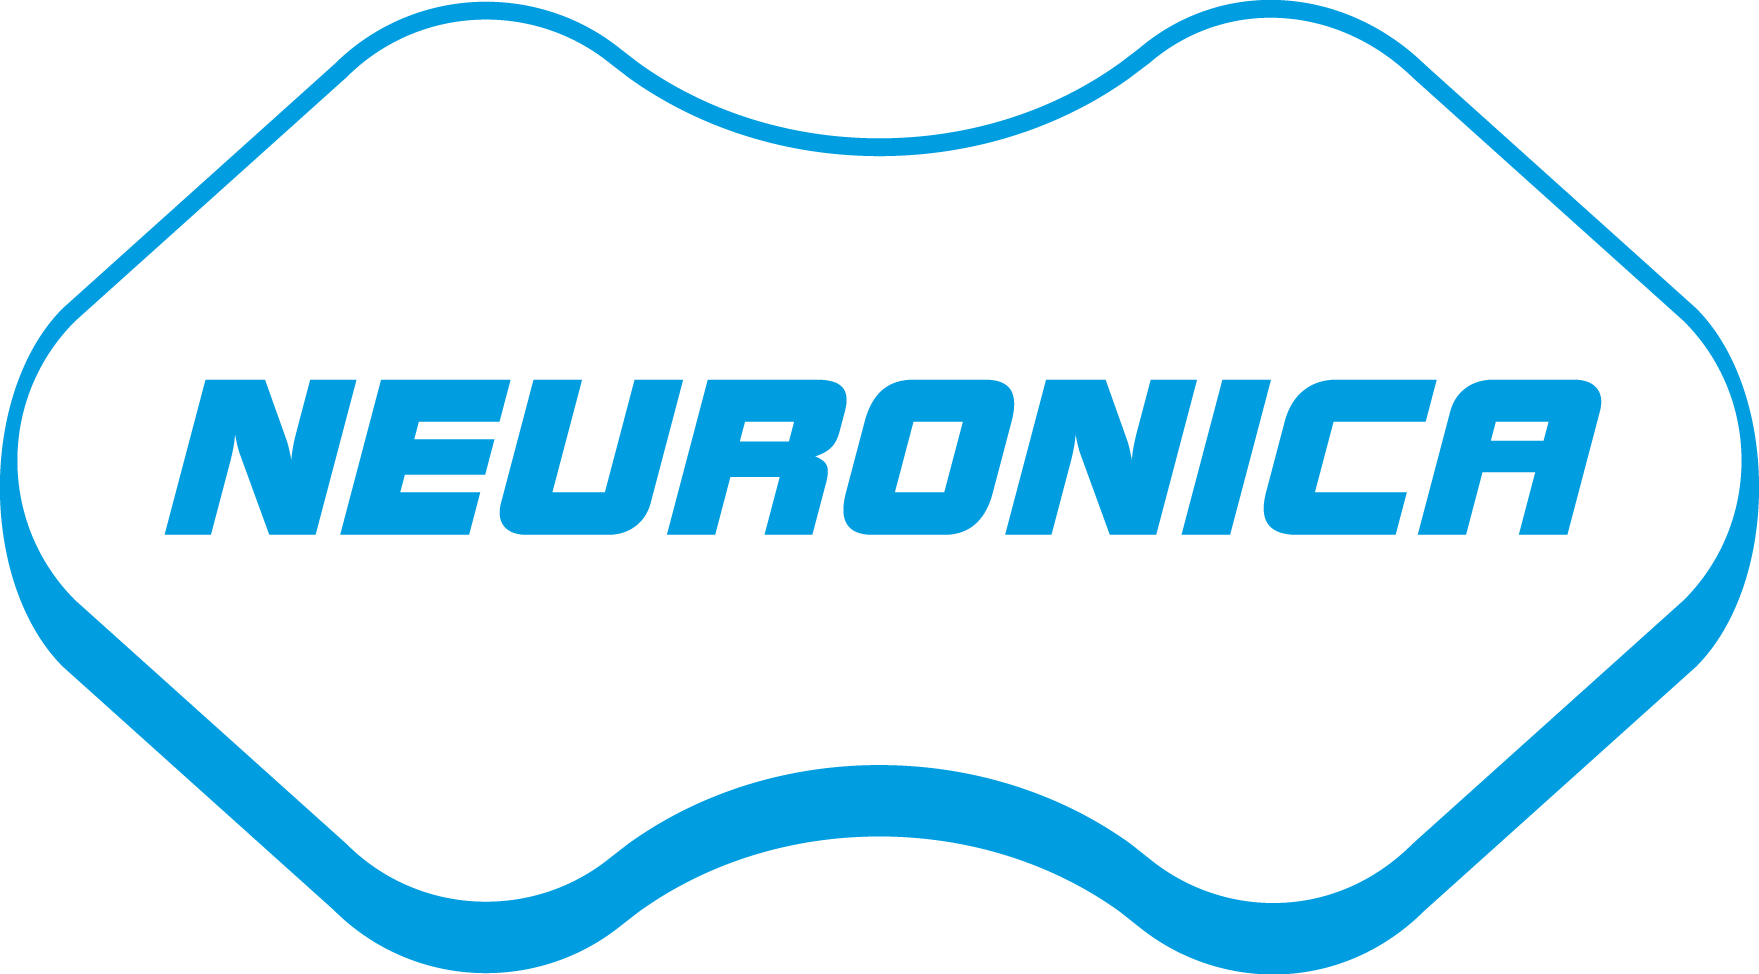 Neuronica Srl